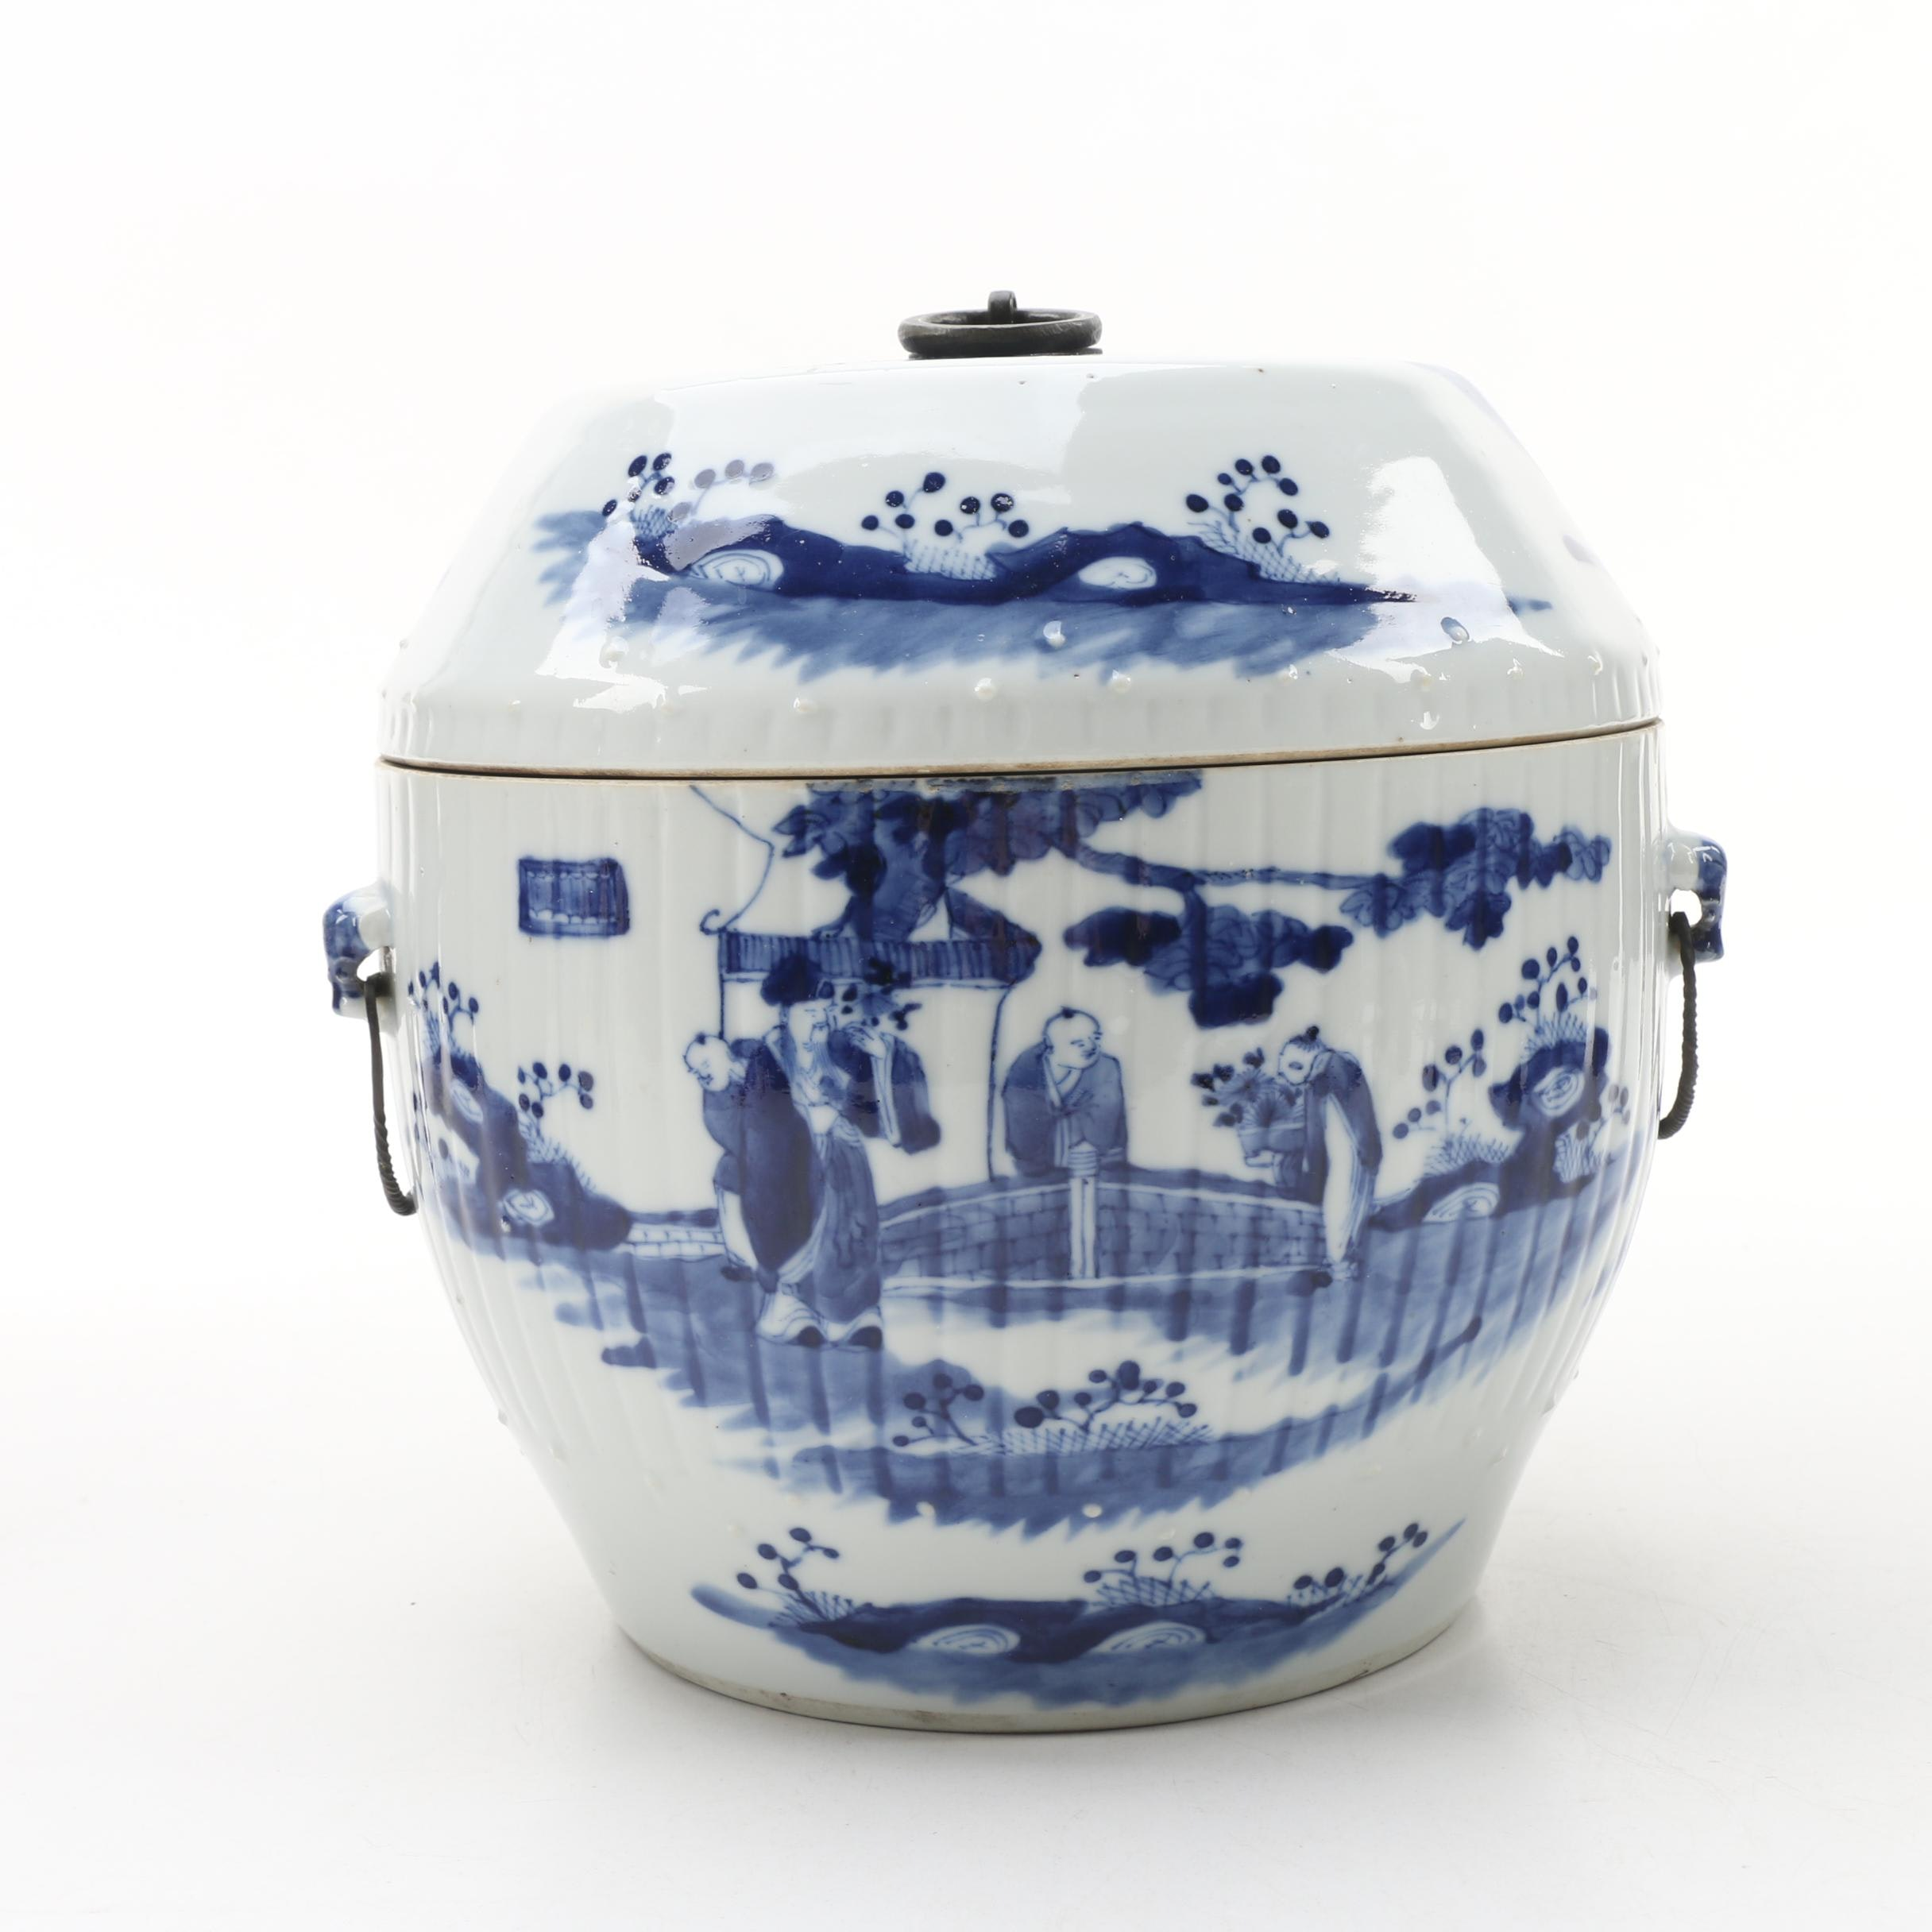 Chinese Blue and White Ceramic Covered Storage Jar, Mid-Qing Dynasty